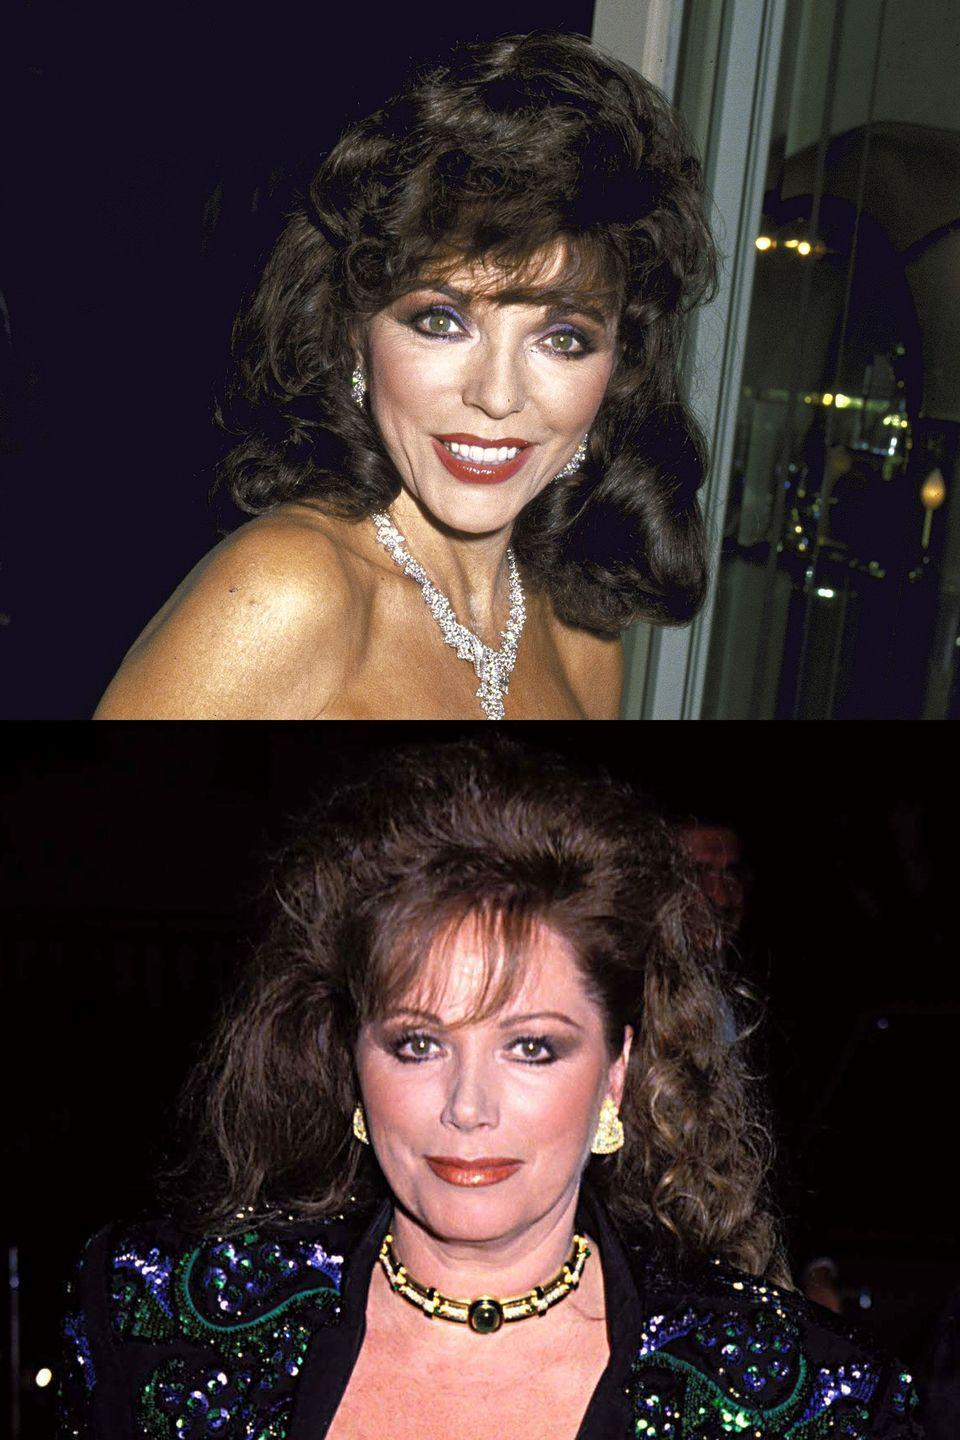 "<p><em>Dynasty </em>soap star Joan Collins and her salacious novelist sister Jackie Collins were known for their sibling rivalry. It <a href=""http://www.latimes.com/local/la-me-ln-jackie-and-joan-collins-rivalry-friendship-and-sisterhood-20150919-htmlstory.html"" rel=""nofollow noopener"" target=""_blank"" data-ylk=""slk:reportedly came to a head"" class=""link rapid-noclick-resp"">reportedly came to a head</a> when Joan stepped on Jackie's toes by securing a multimillion-dollar book deal with Jackie's publisher. The ladies always saved face in the press though, with Jackie <a href=""http://articles.latimes.com/print/1988-03-18/news/li-1856_1_jackie-collins"" rel=""nofollow noopener"" target=""_blank"" data-ylk=""slk:telling the Los Angeles Times"" class=""link rapid-noclick-resp"">telling the <em>Los Angeles Times</em></a> they're ""perfectly good friends."" Sure.</p>"